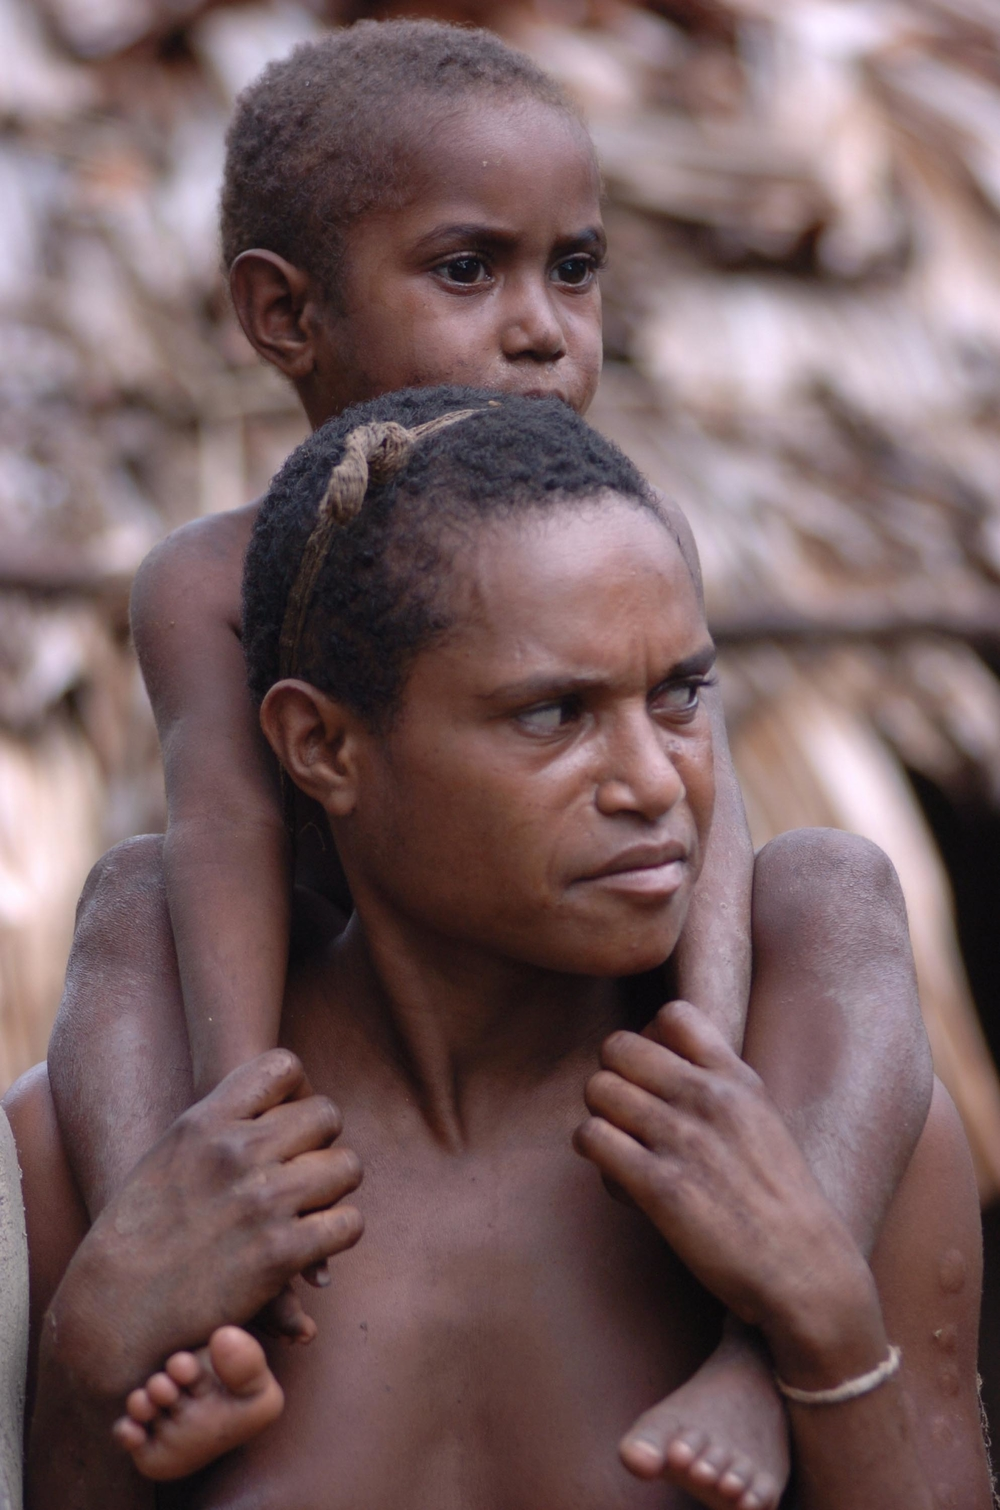 A Papuan woman carrying her son in Papua. The region is one of Indonesia's poorest. Approximately 35 percent of the Papua's 2.6 million inhabitants live below the poverty line